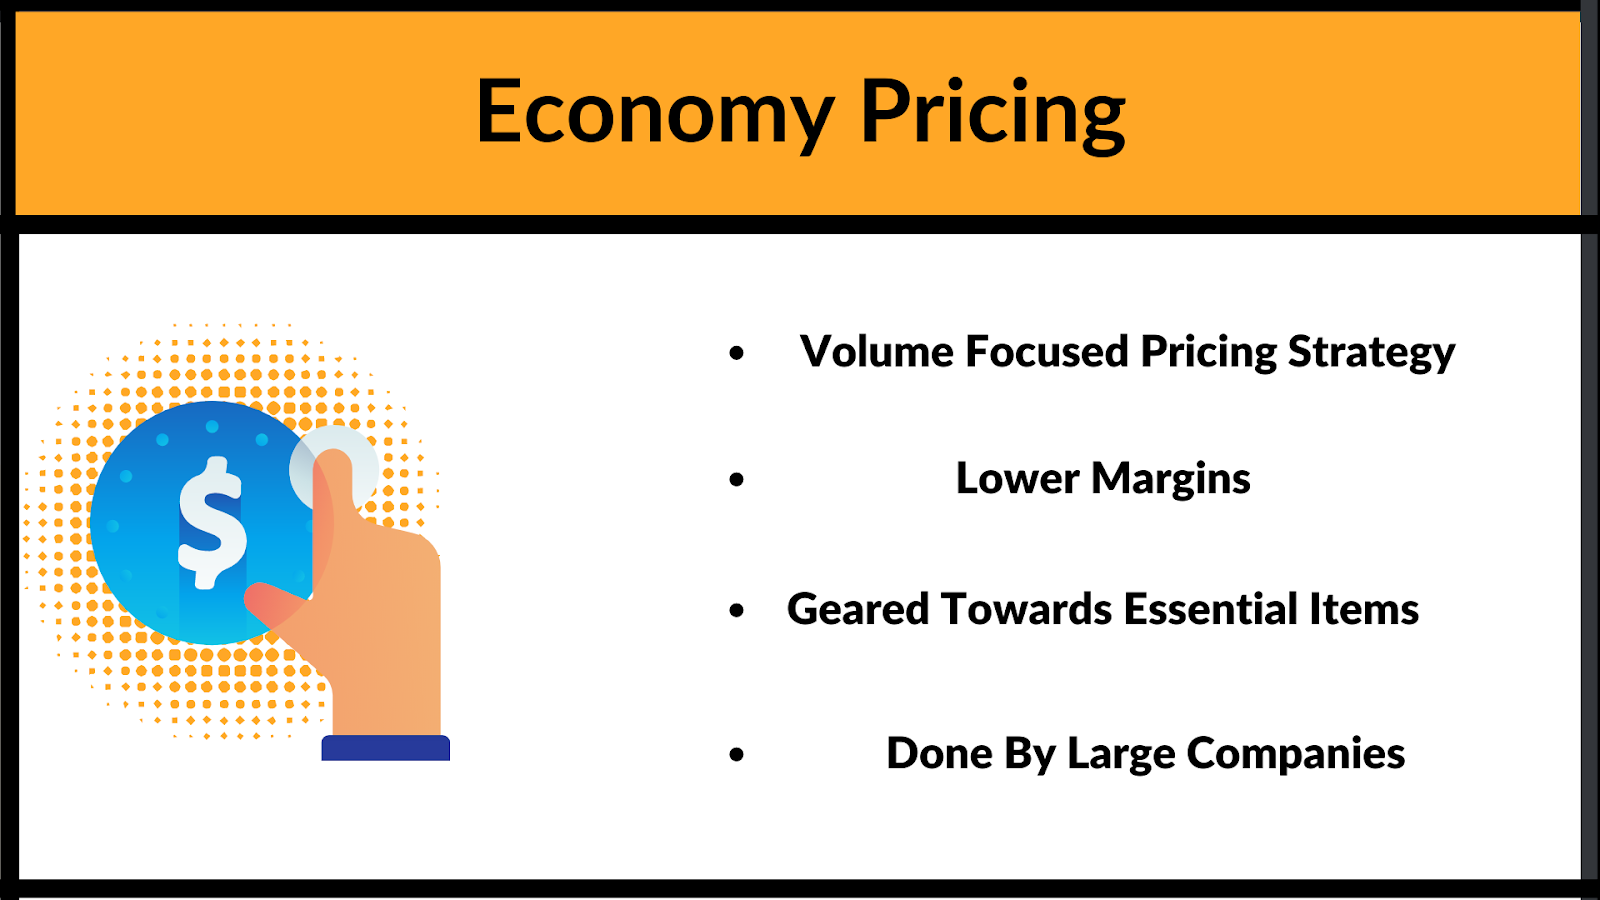 What is economy pricing and wat is it about?